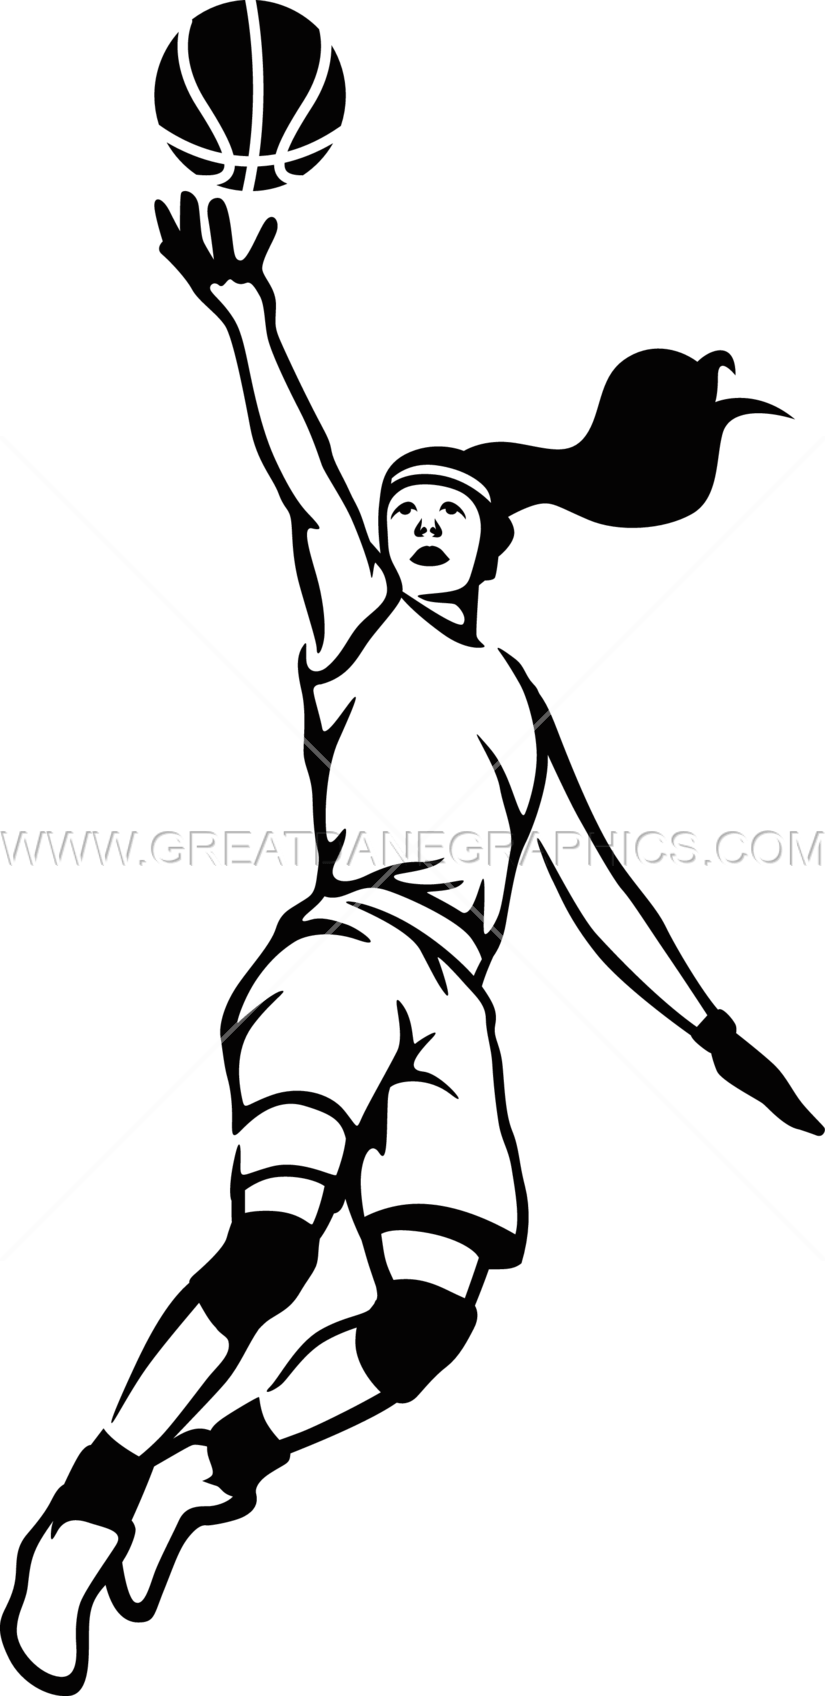 825x1696 Girls Basketball Layup Production Ready Artwork For T Shirt Printing